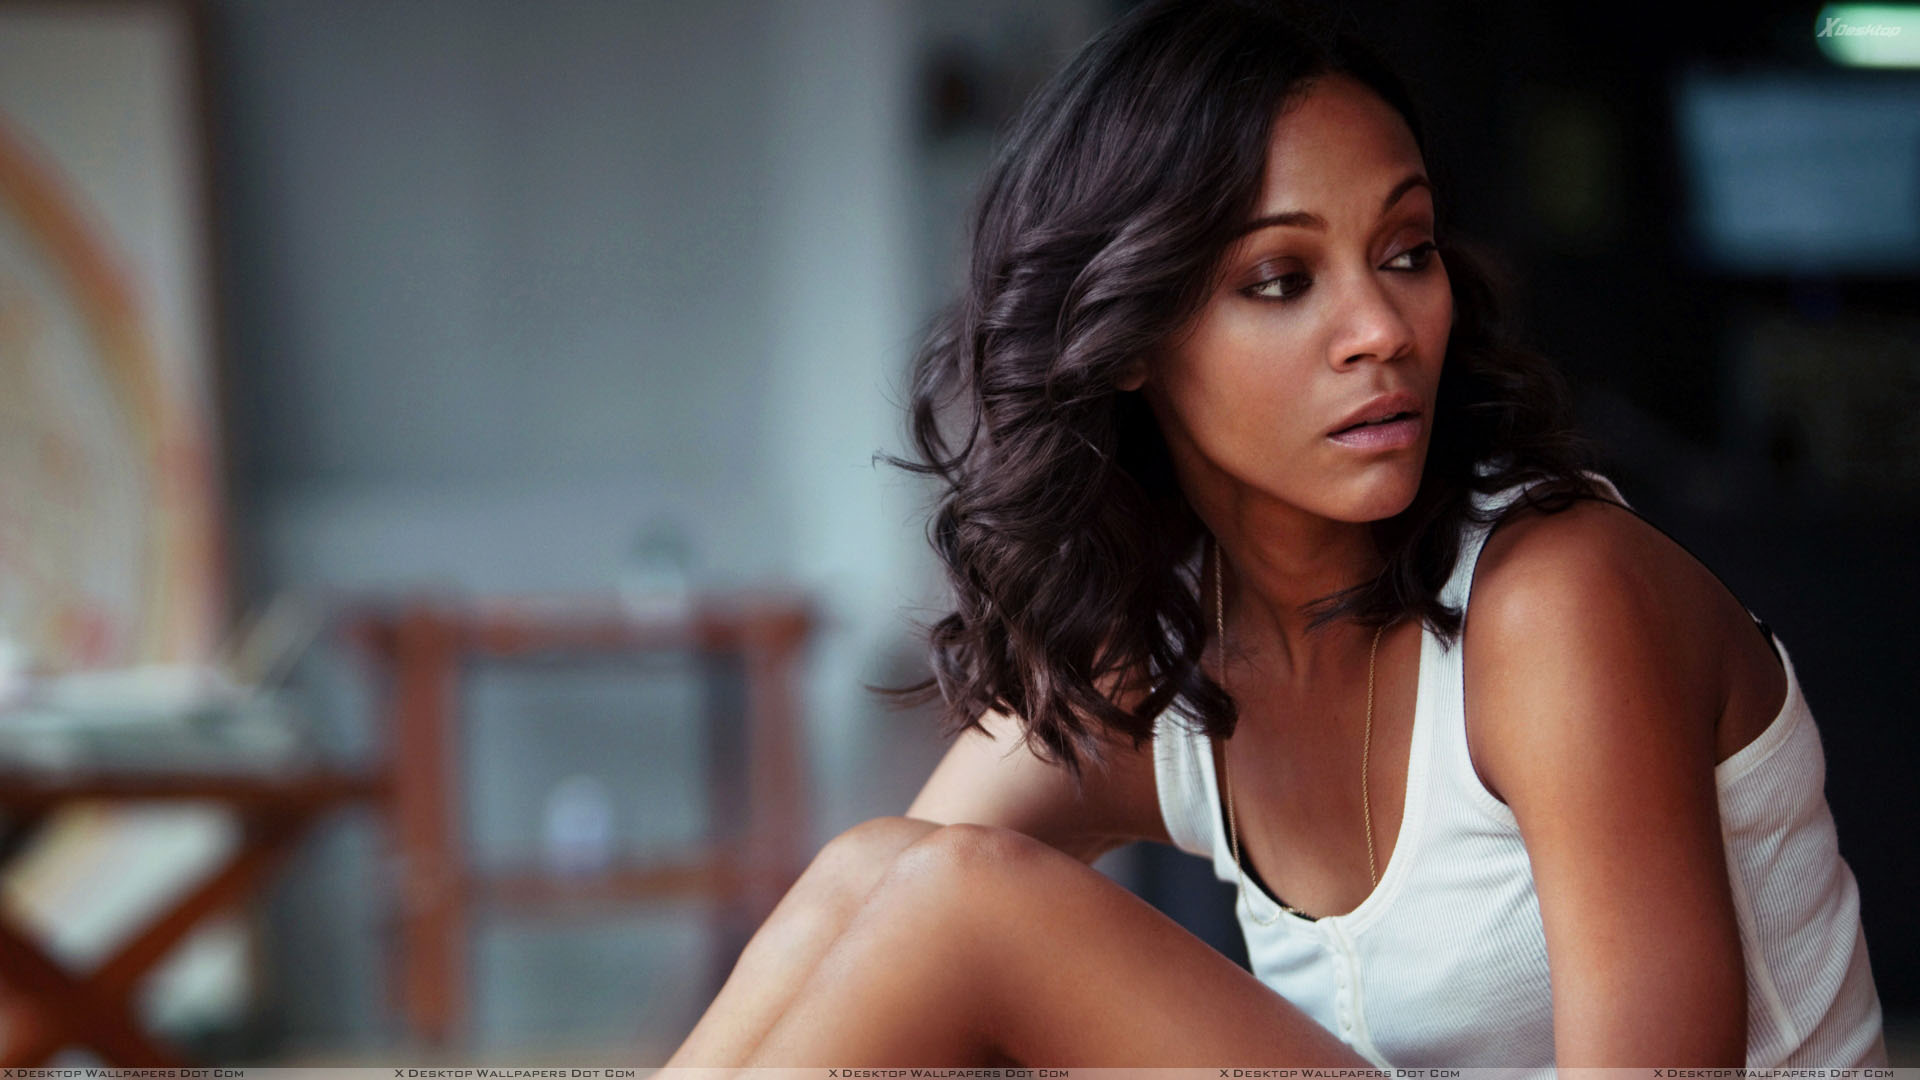 Zoe Saldana Wallpapers...